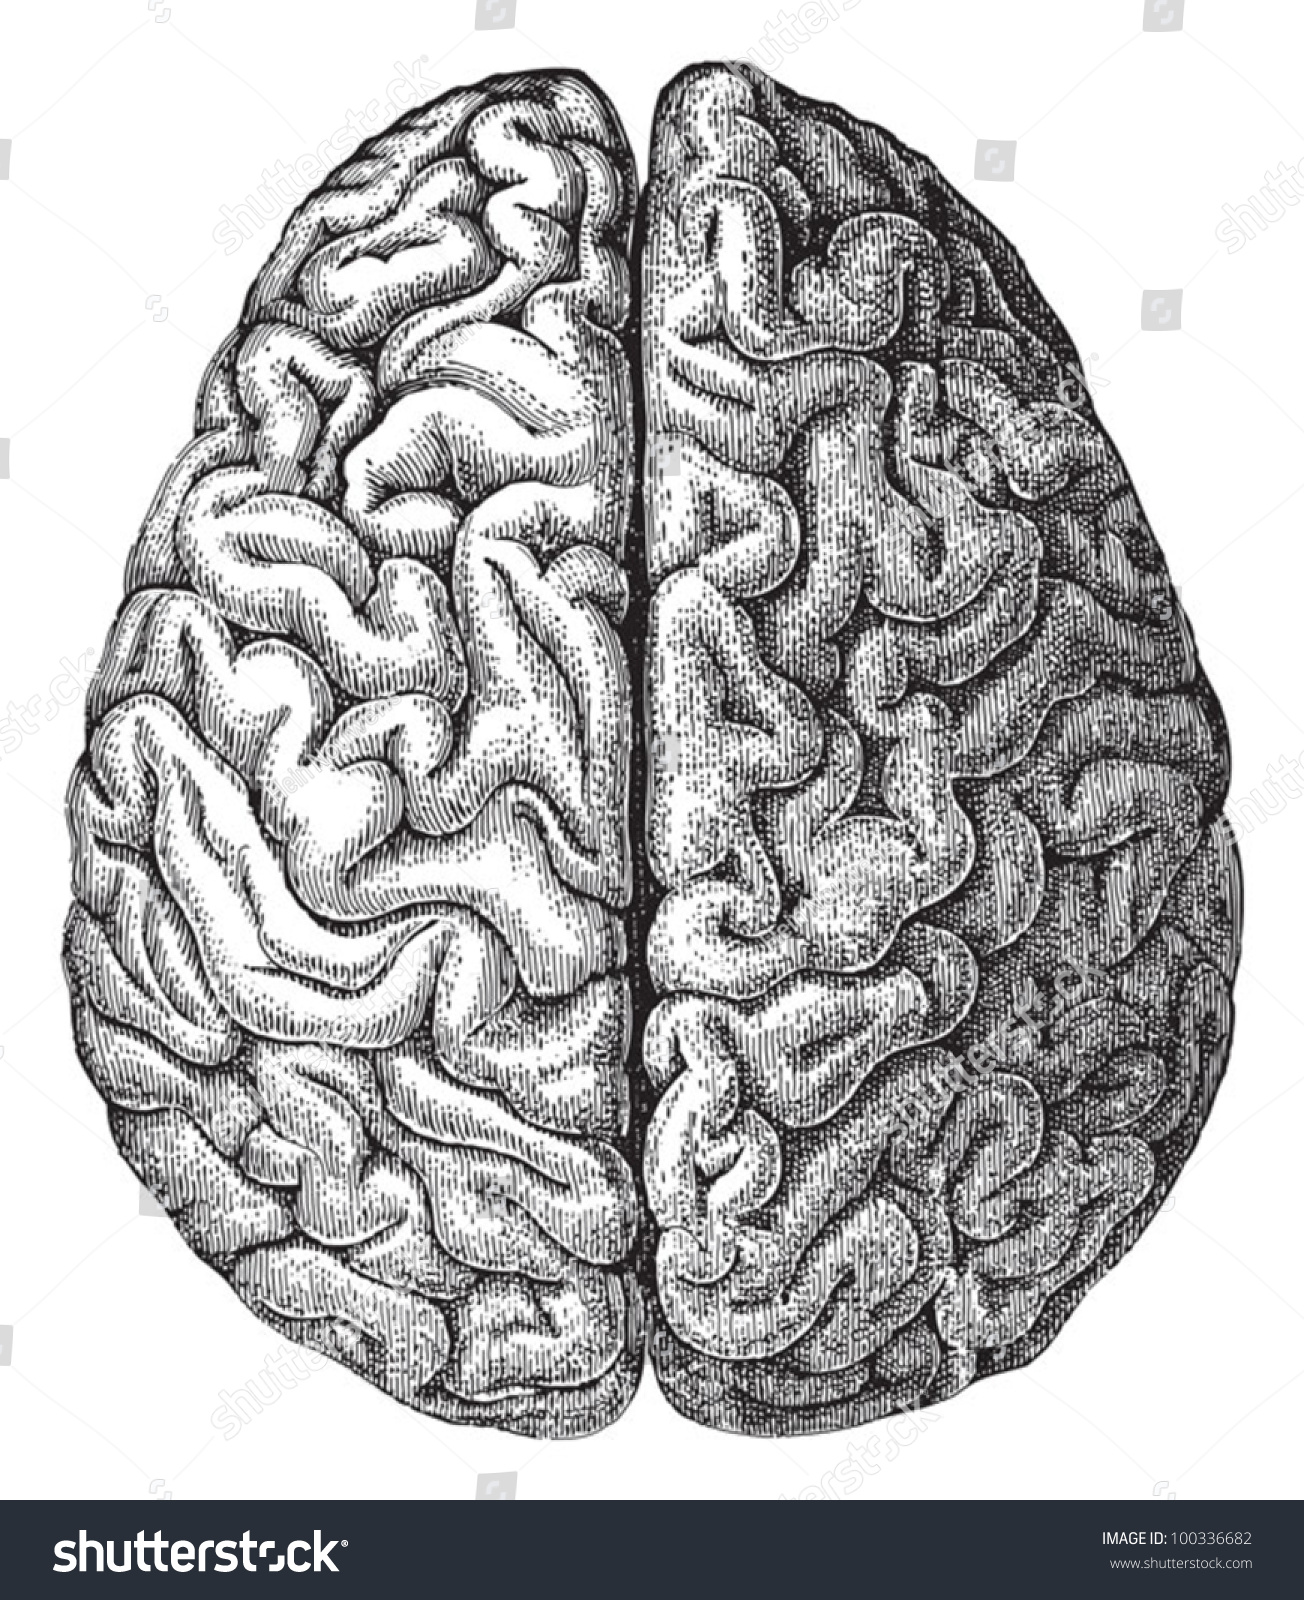 Human brain / vintage illustration from Meyers Konversations-Lexikon ...